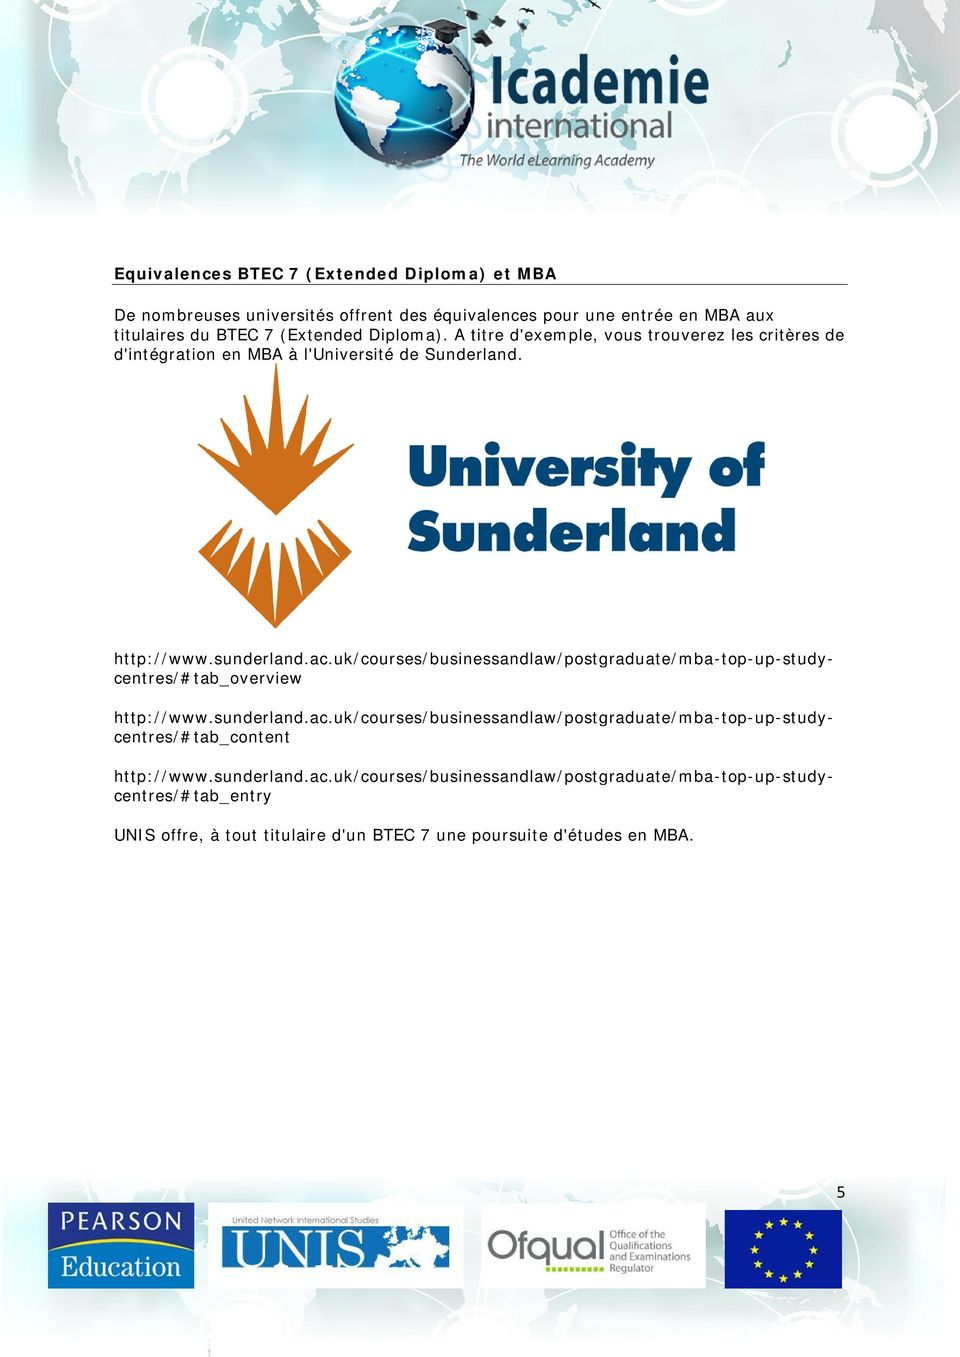 uk/courses/businessandlaw/postgraduate/mba-top-up-studycentres/#tab_overview http://www.sunderland.ac.